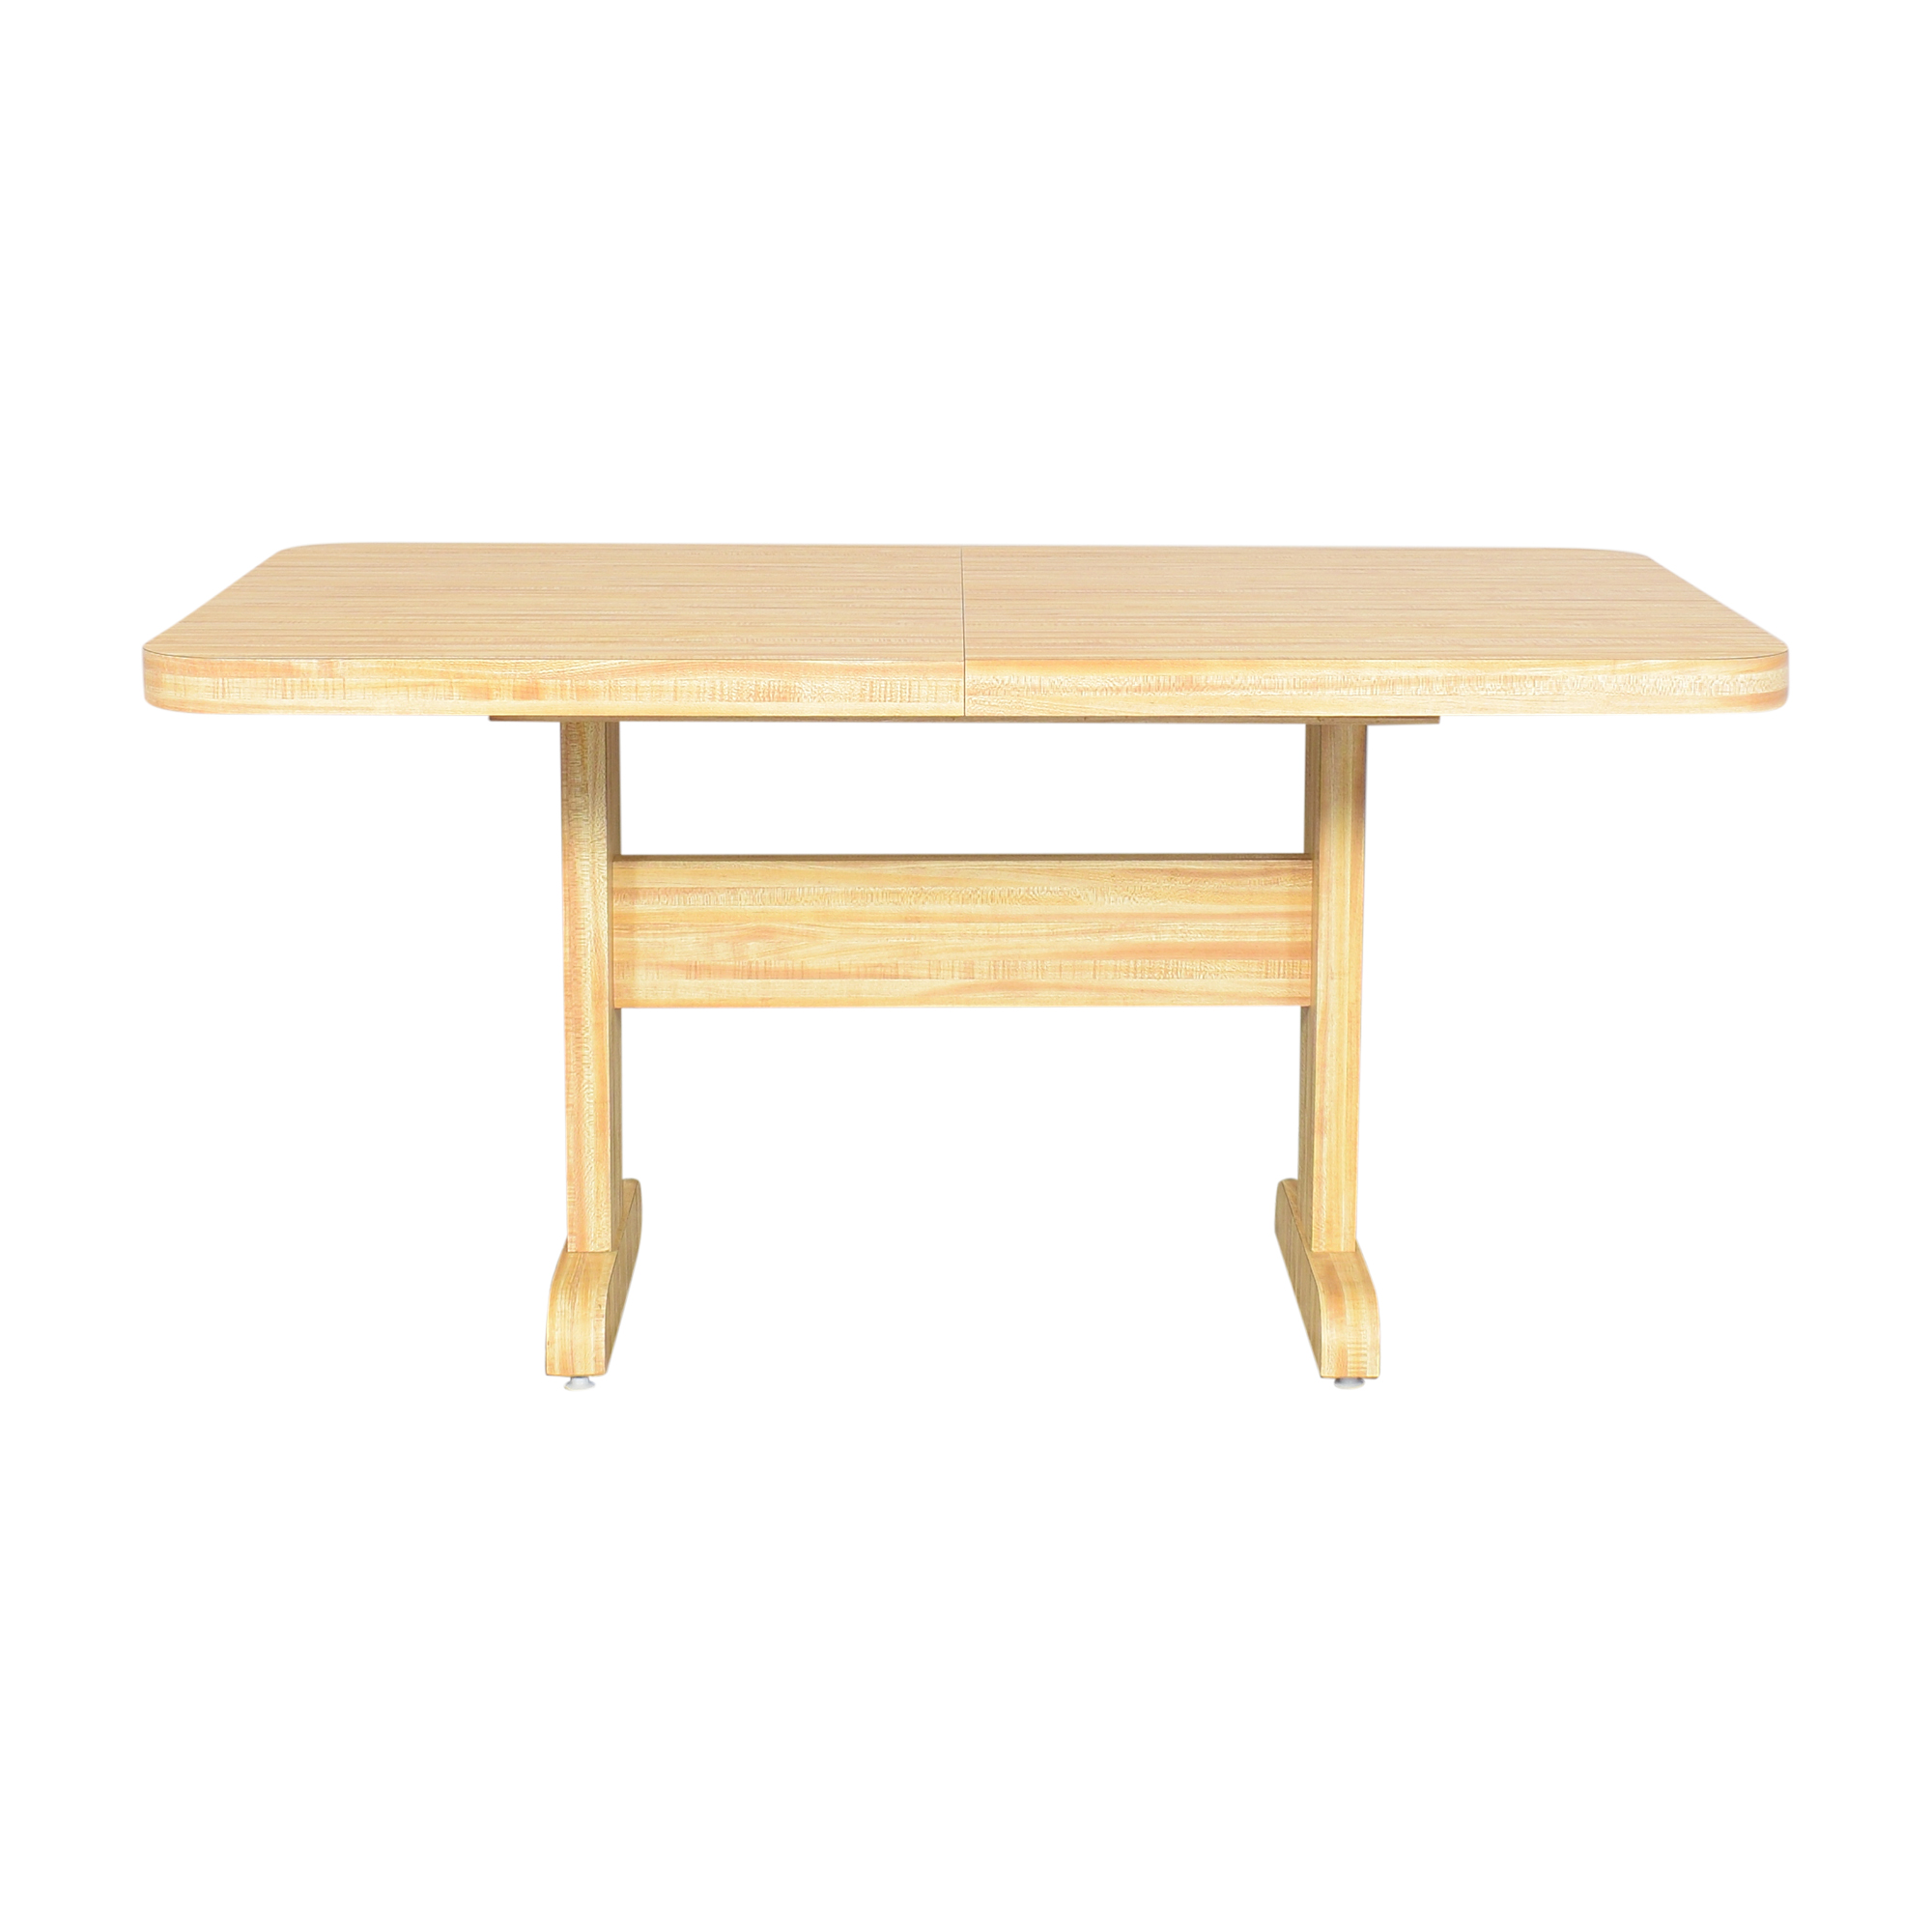 Adirondack Table & Slide Extendable Dining Table dimensions